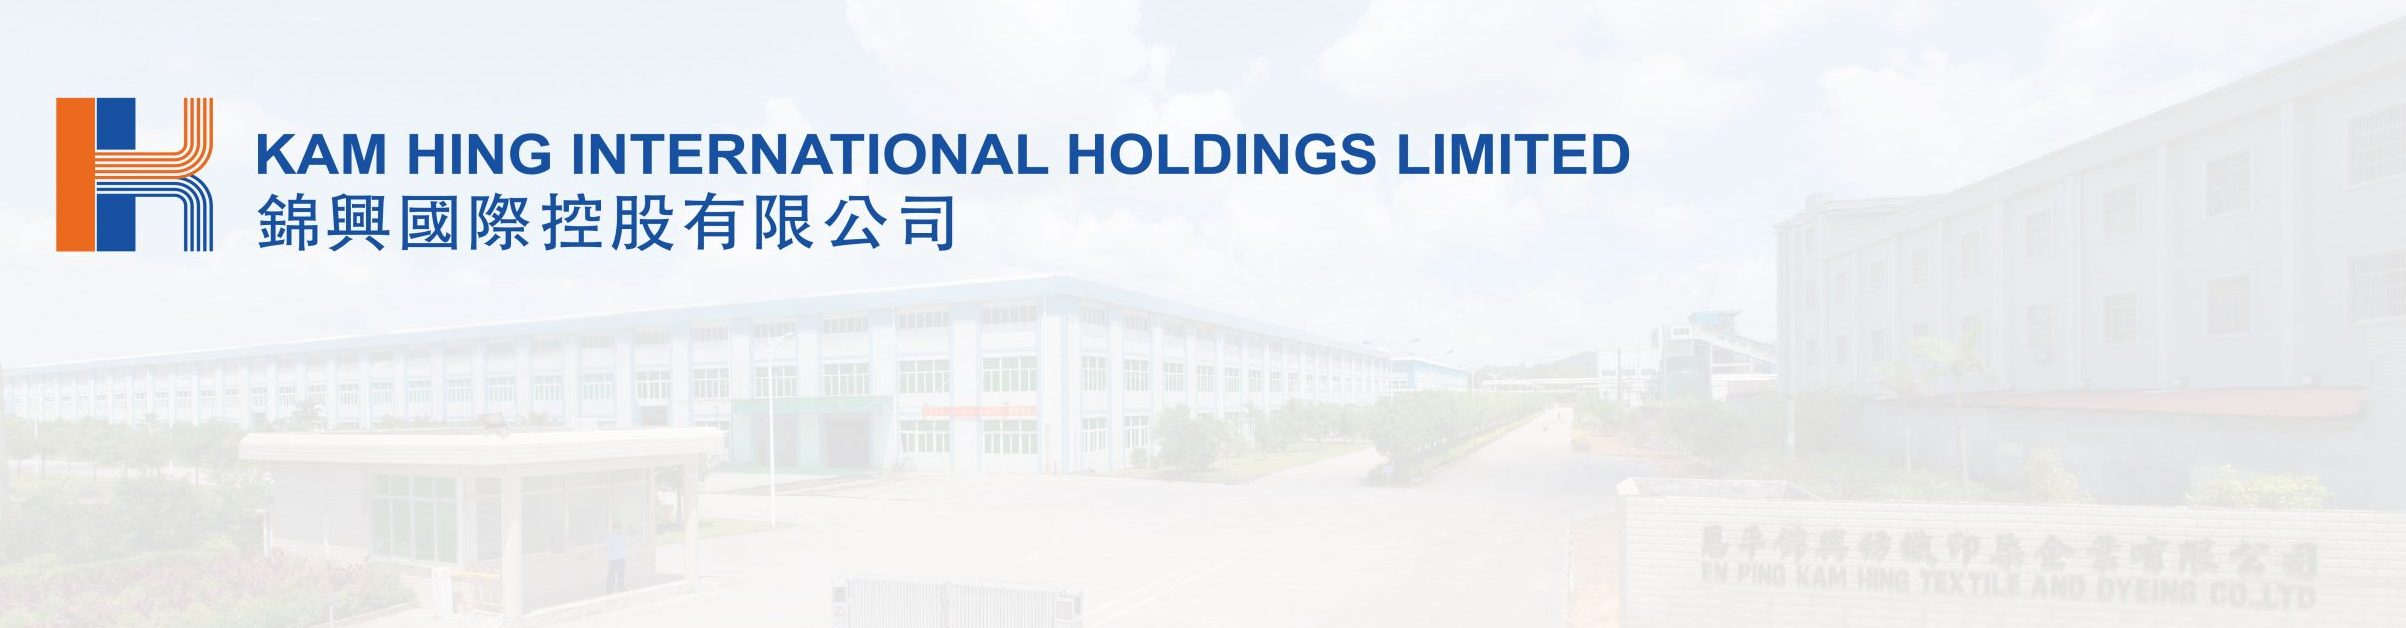 Kam Hing International Holdings Limited